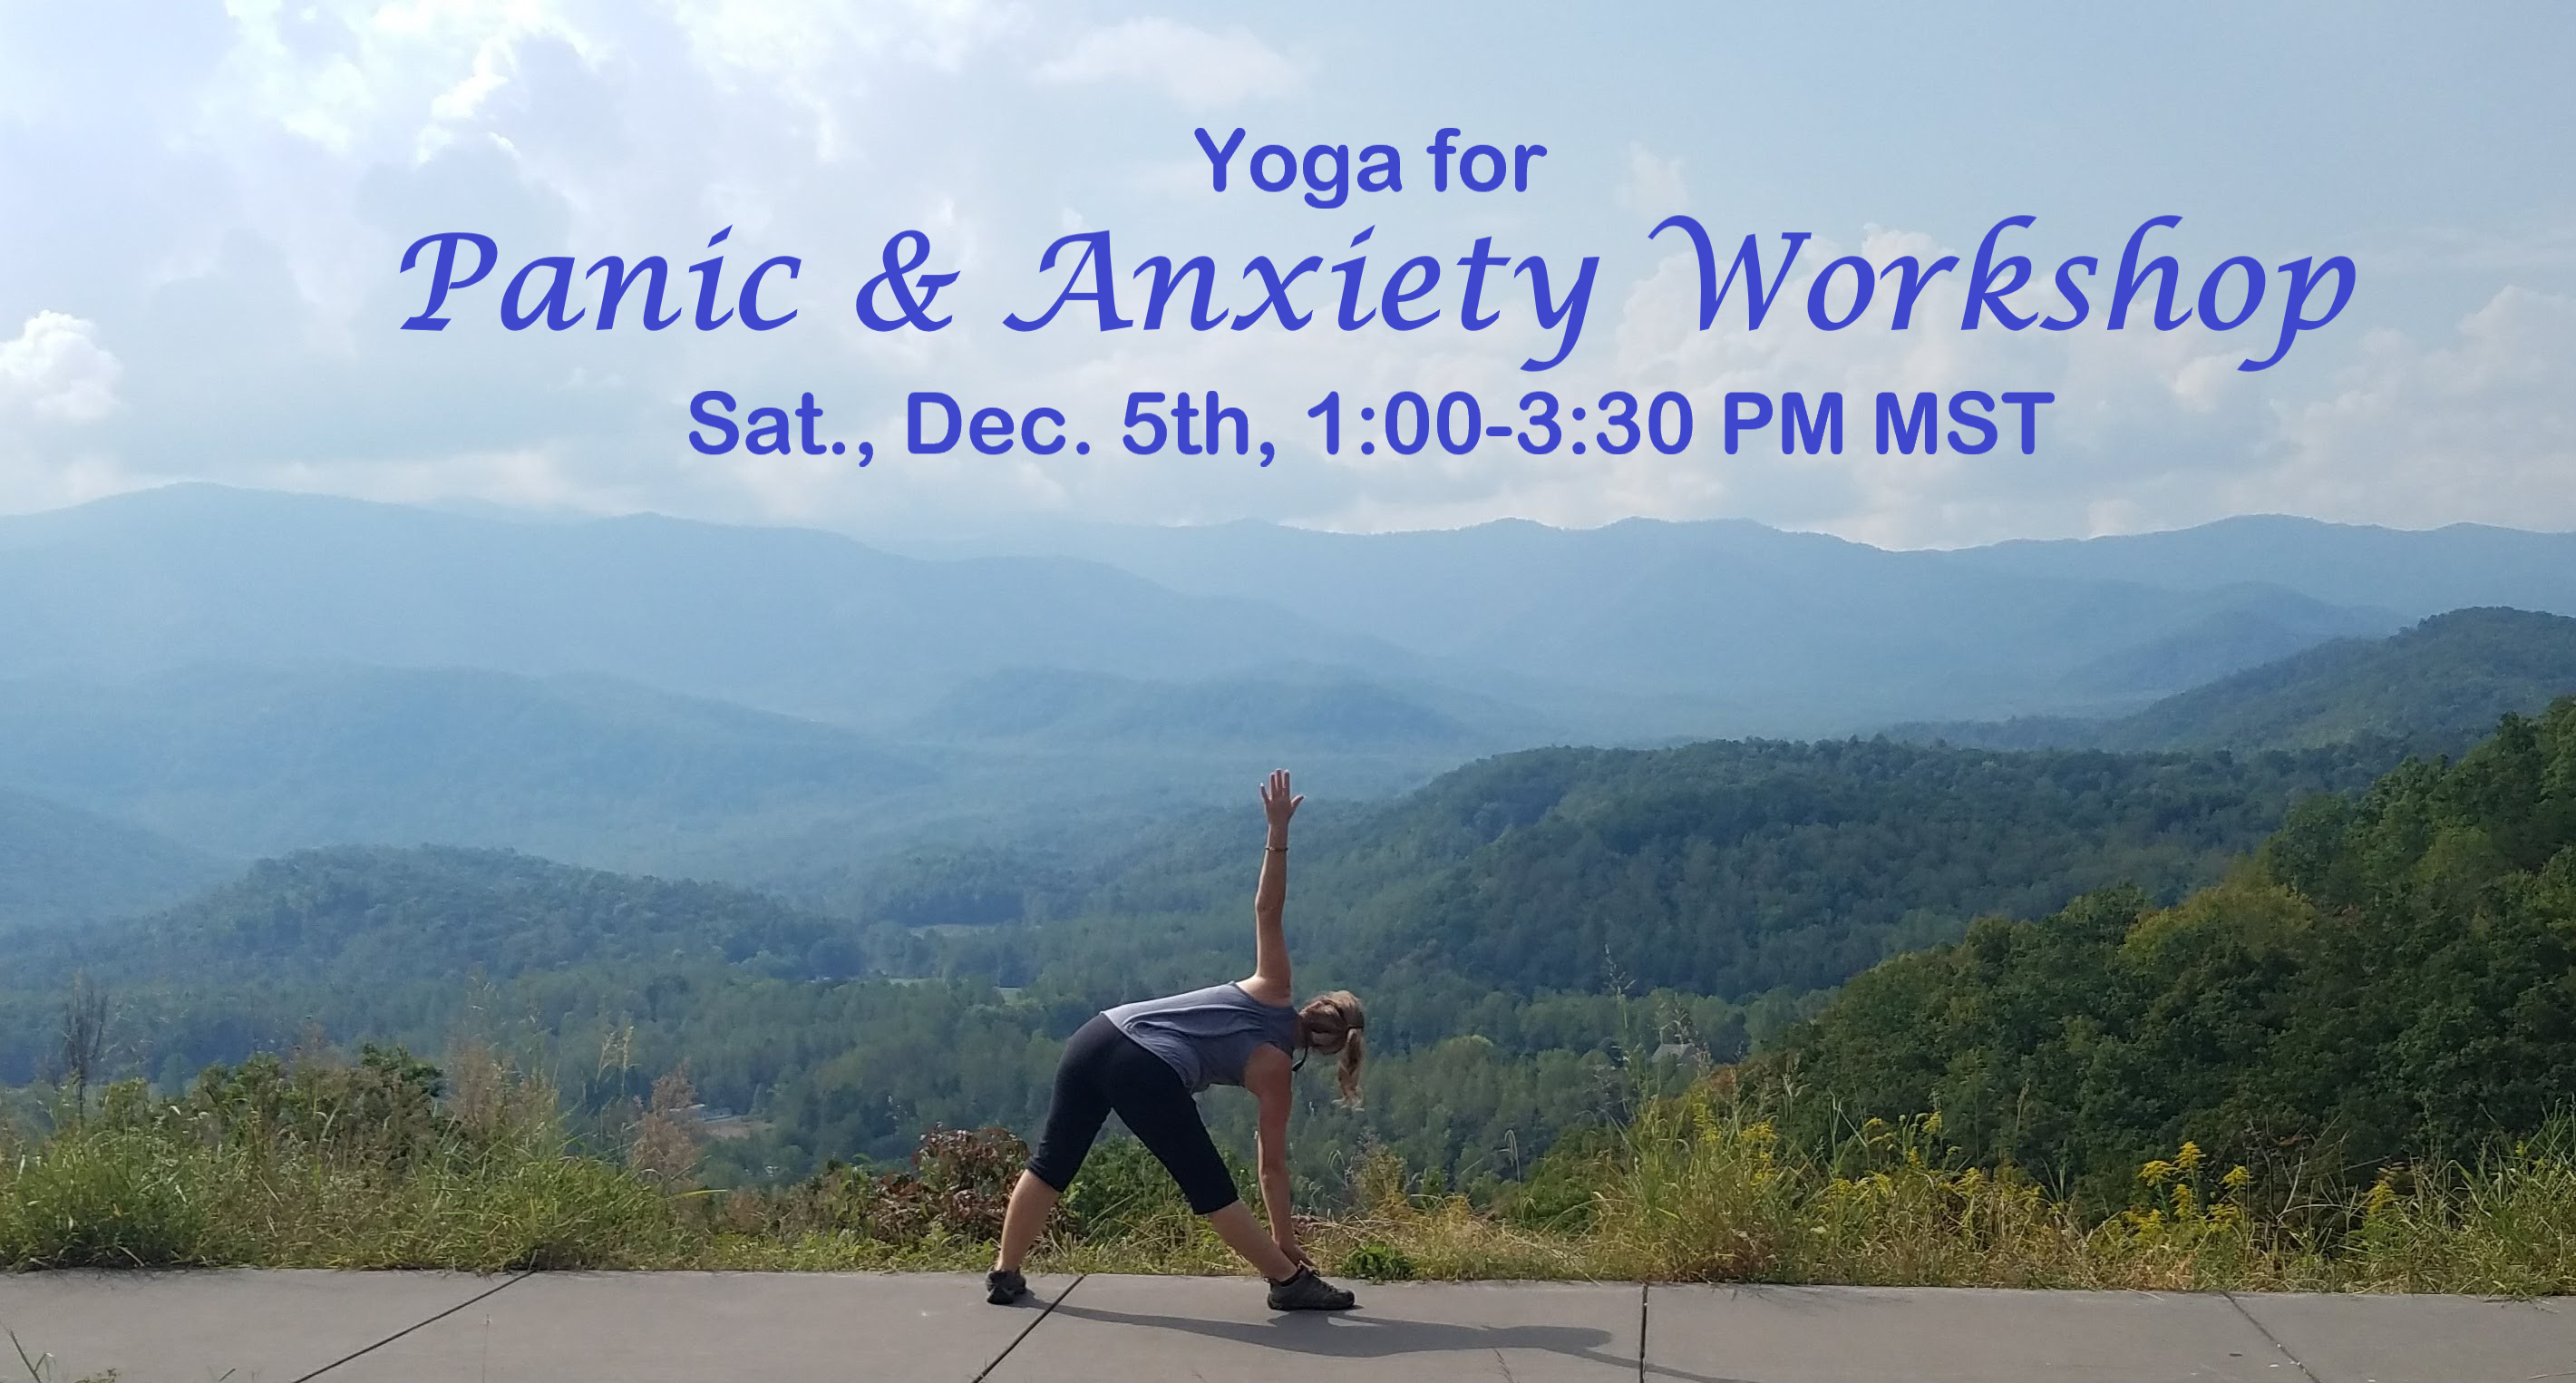 yoga-for-panic-anxiety-image-2-class-ad-1